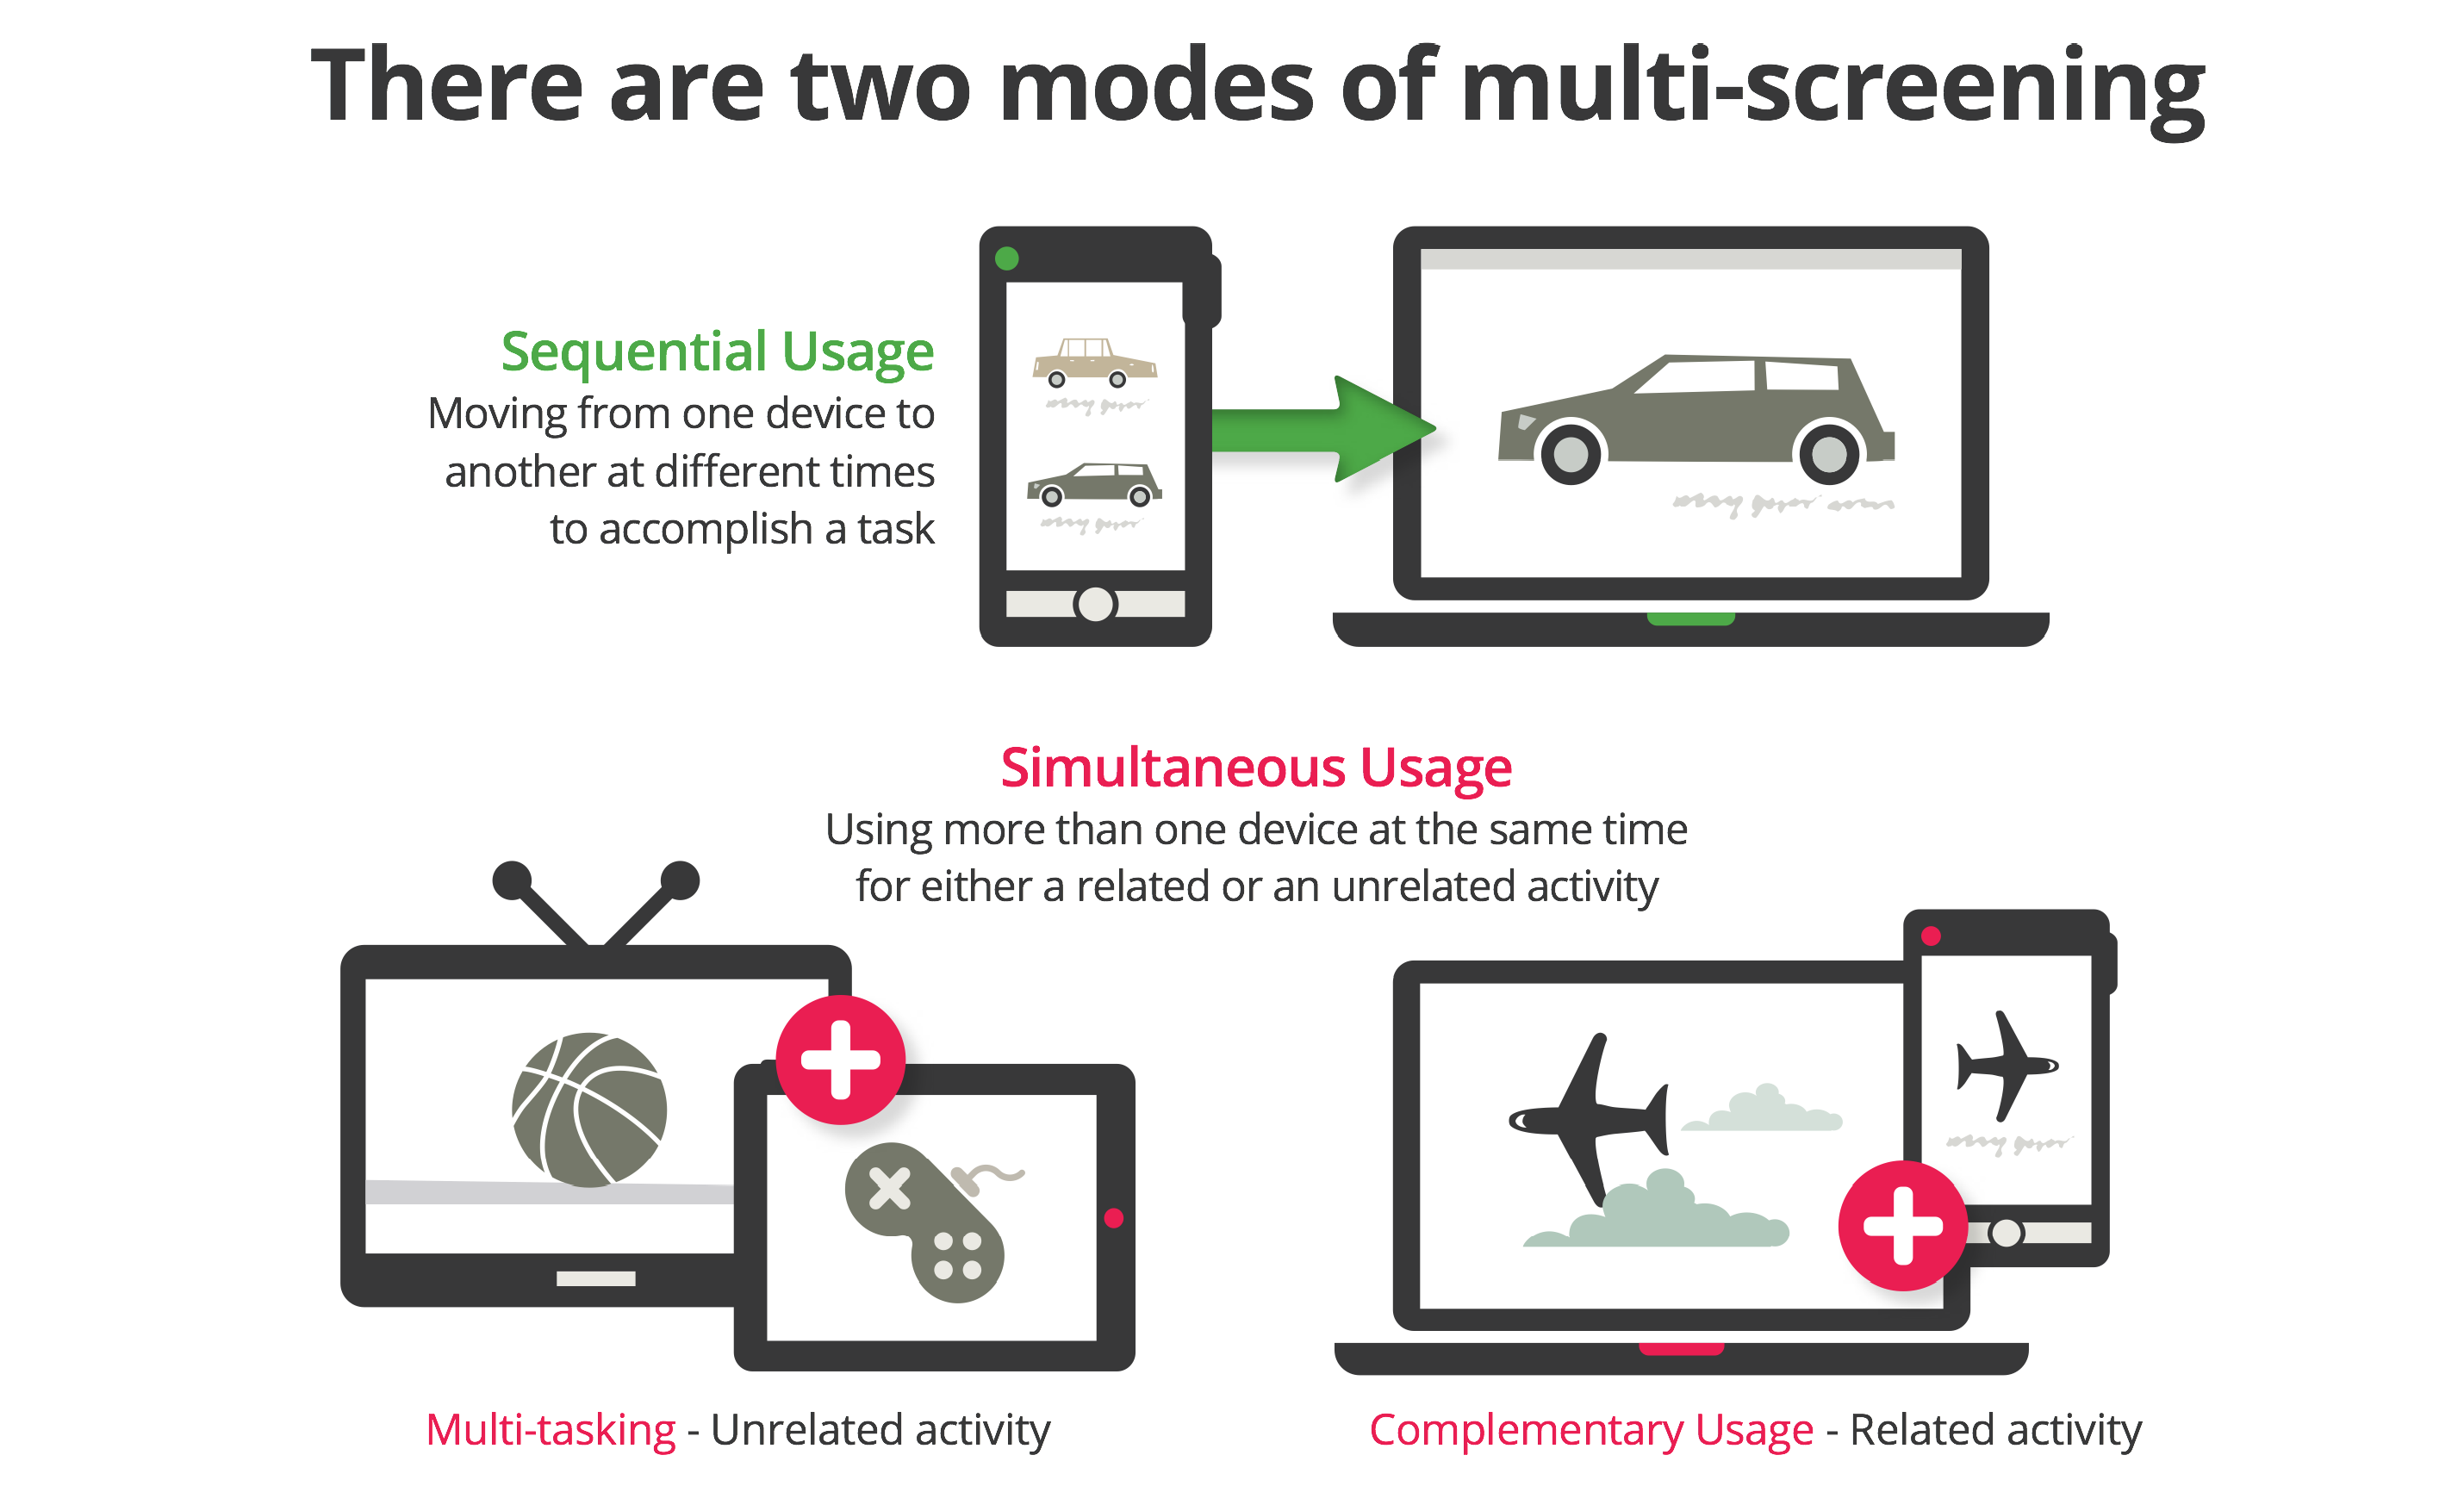 There are two modes of multi screening